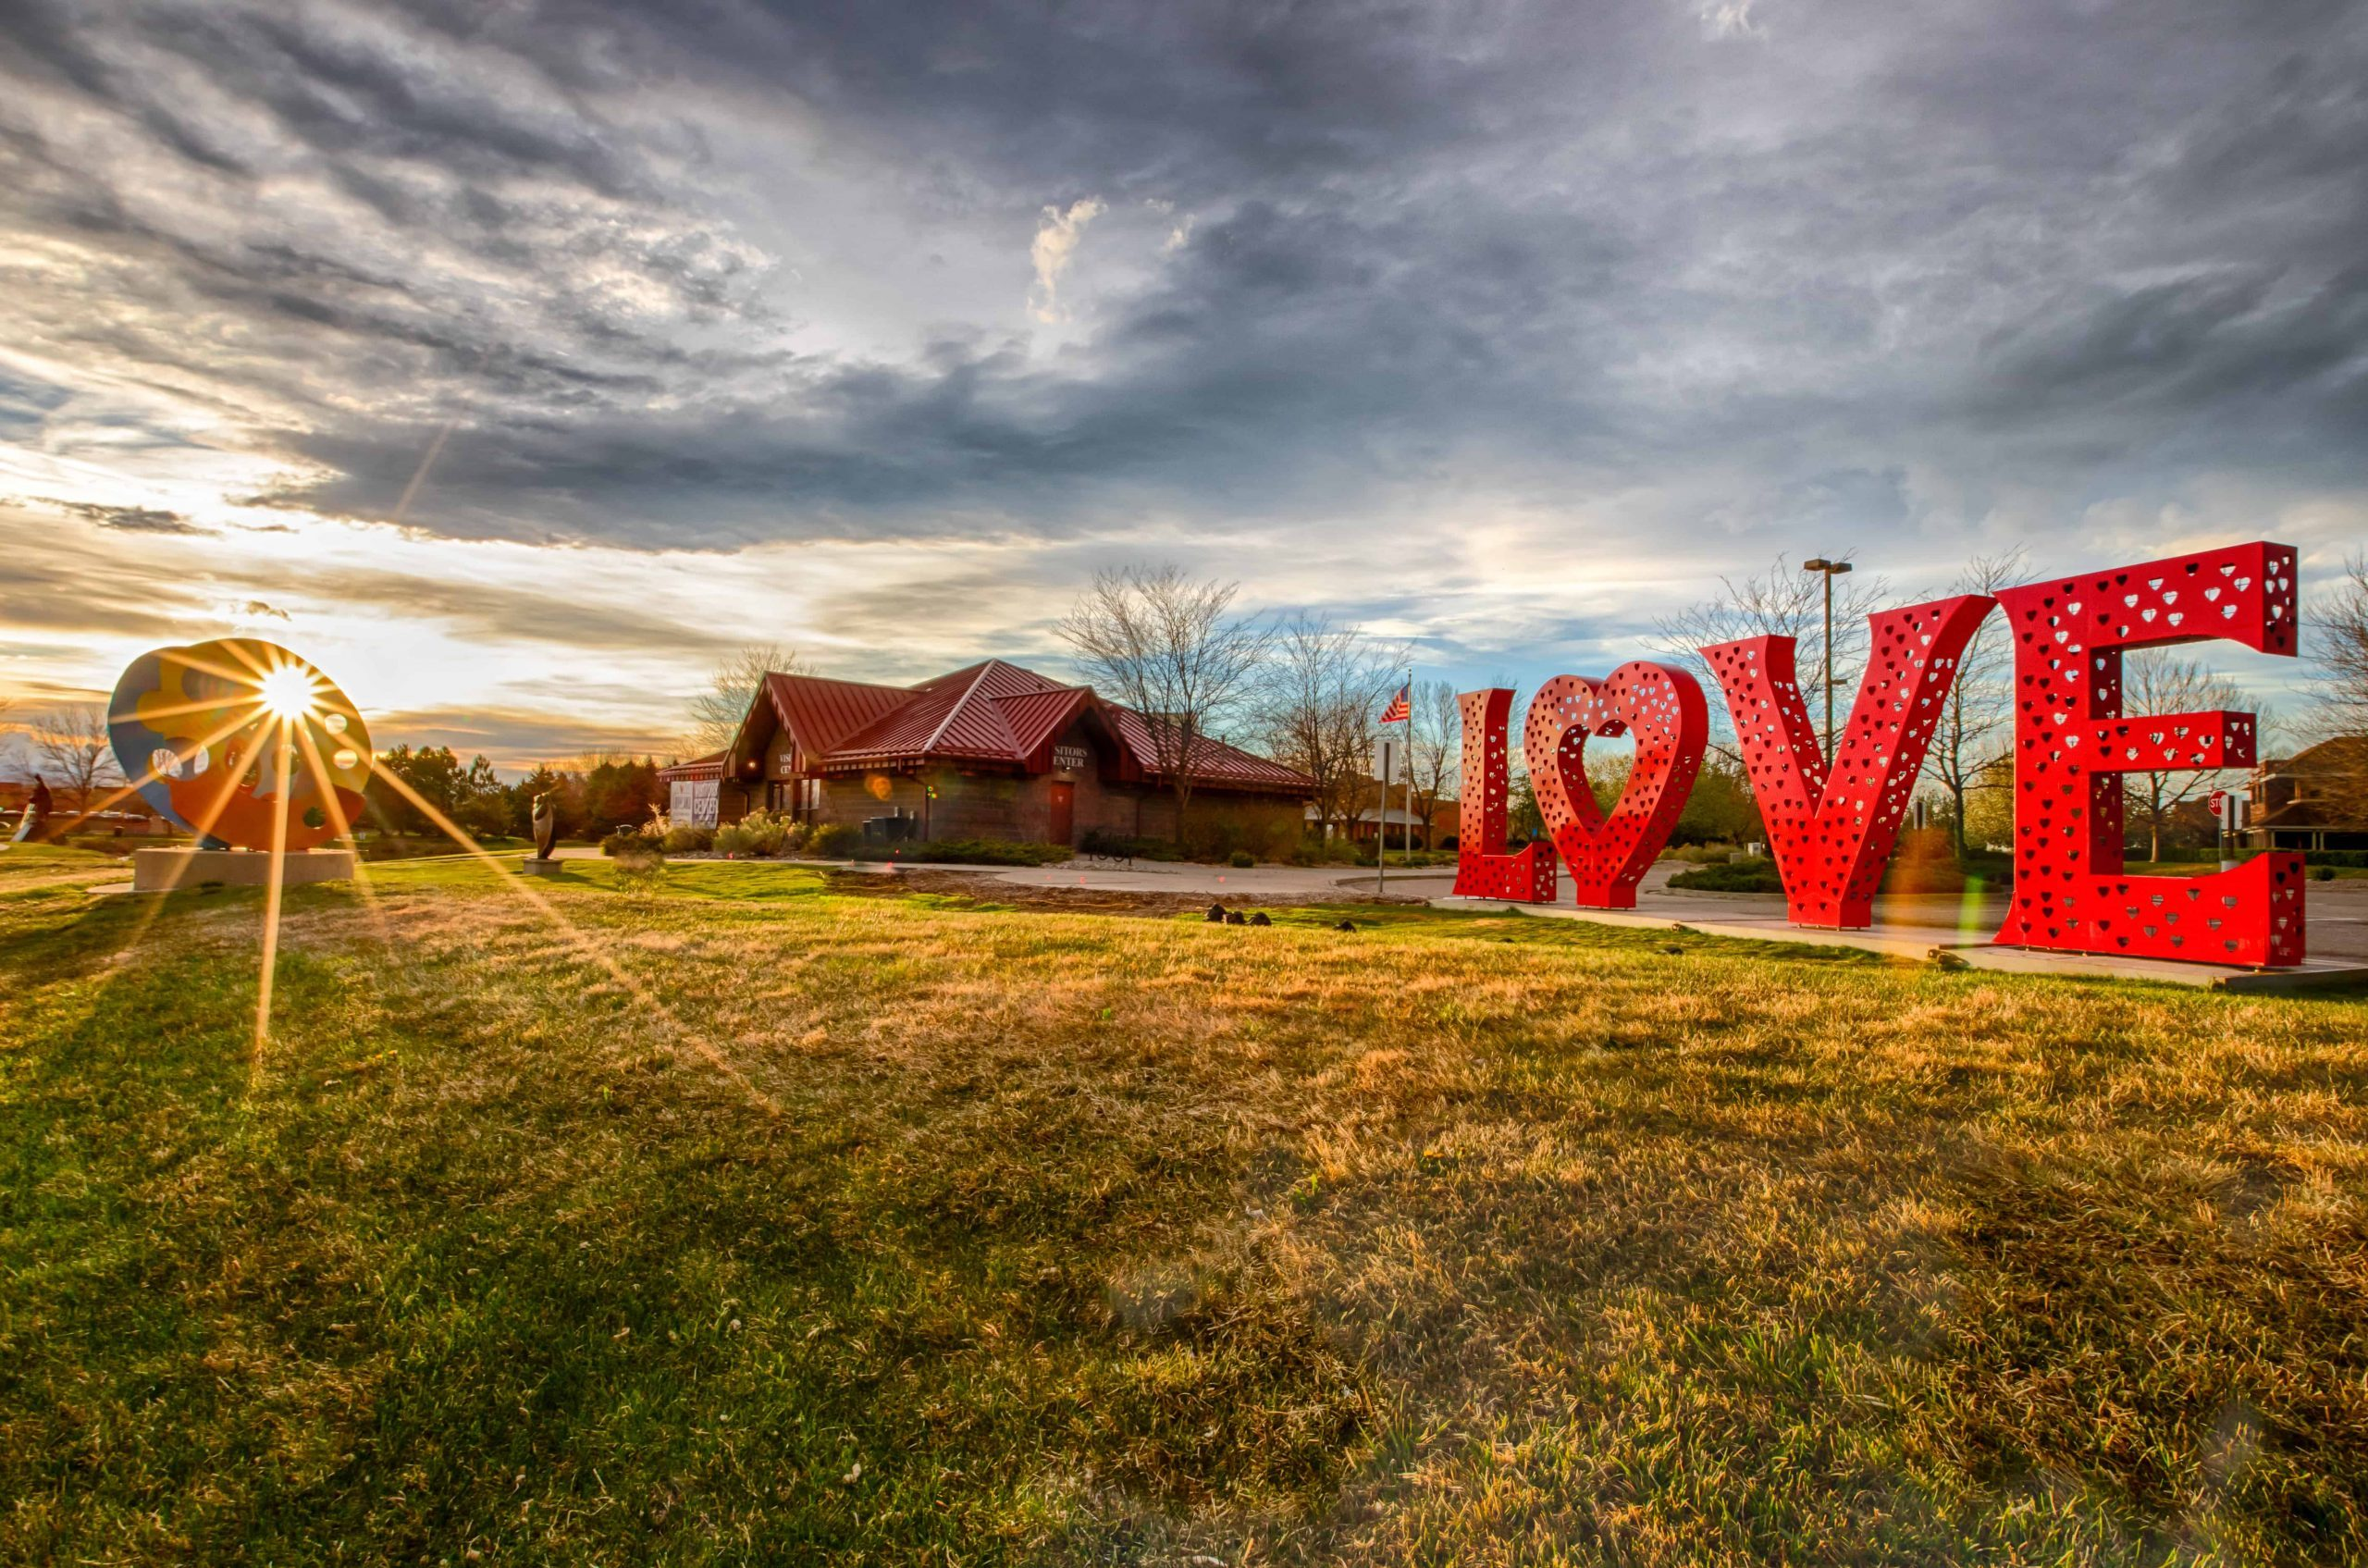 The LOVE love locks sculpture at the Visitors Center in Loveland, Colorado is one of the largest in the nation. Pose for pictures, or lock your love lock on the back. This is one of two love lock sculptures in the nation's Sweetheart City.